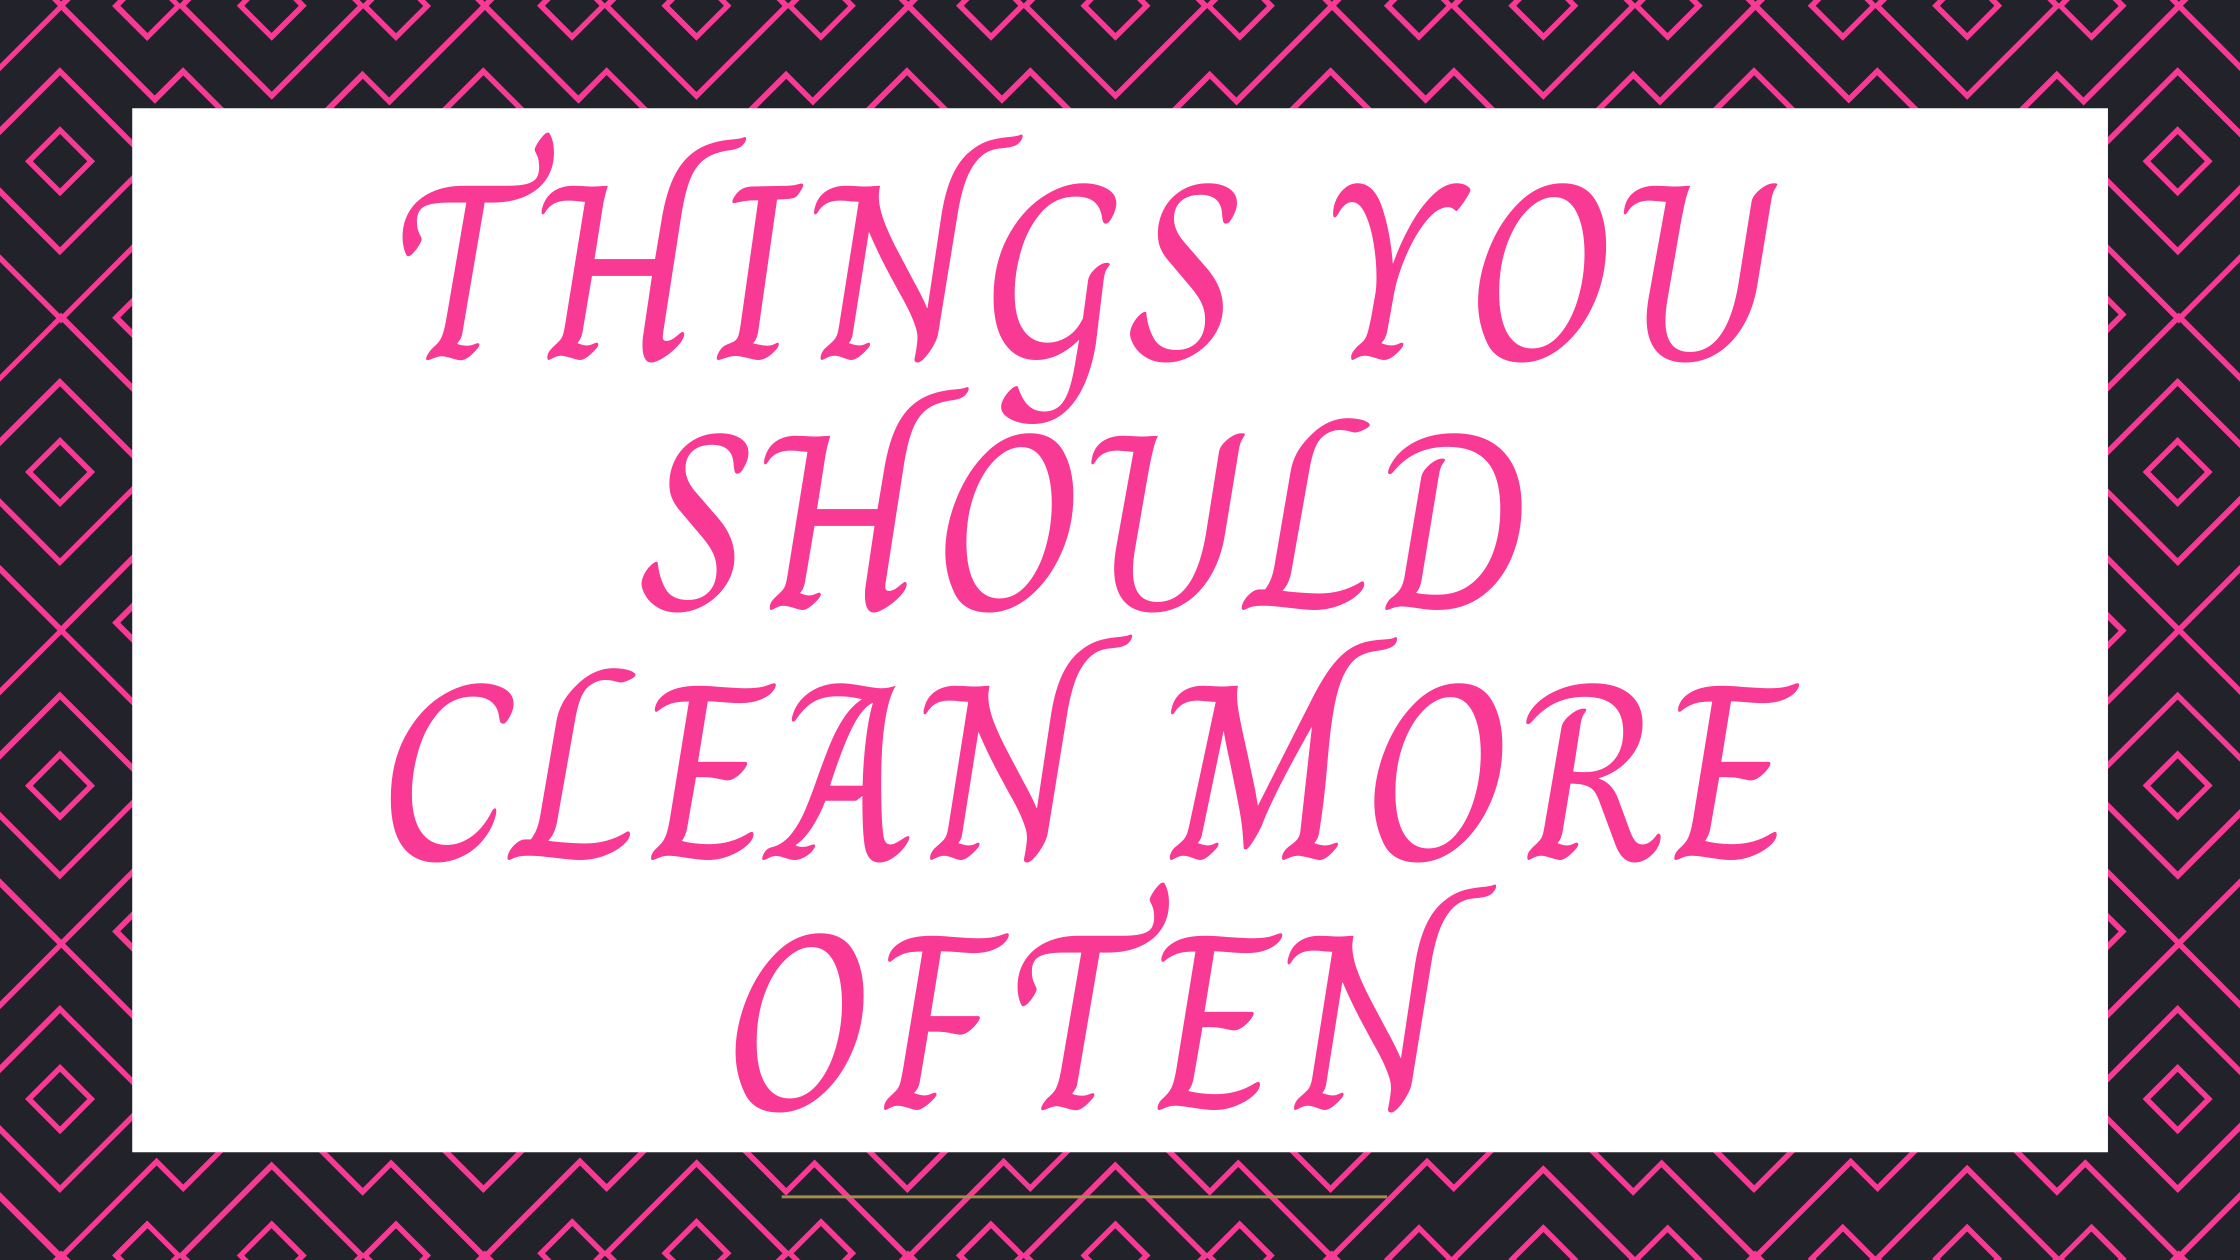 Thinmgs to clean more often |neveralonemom.com